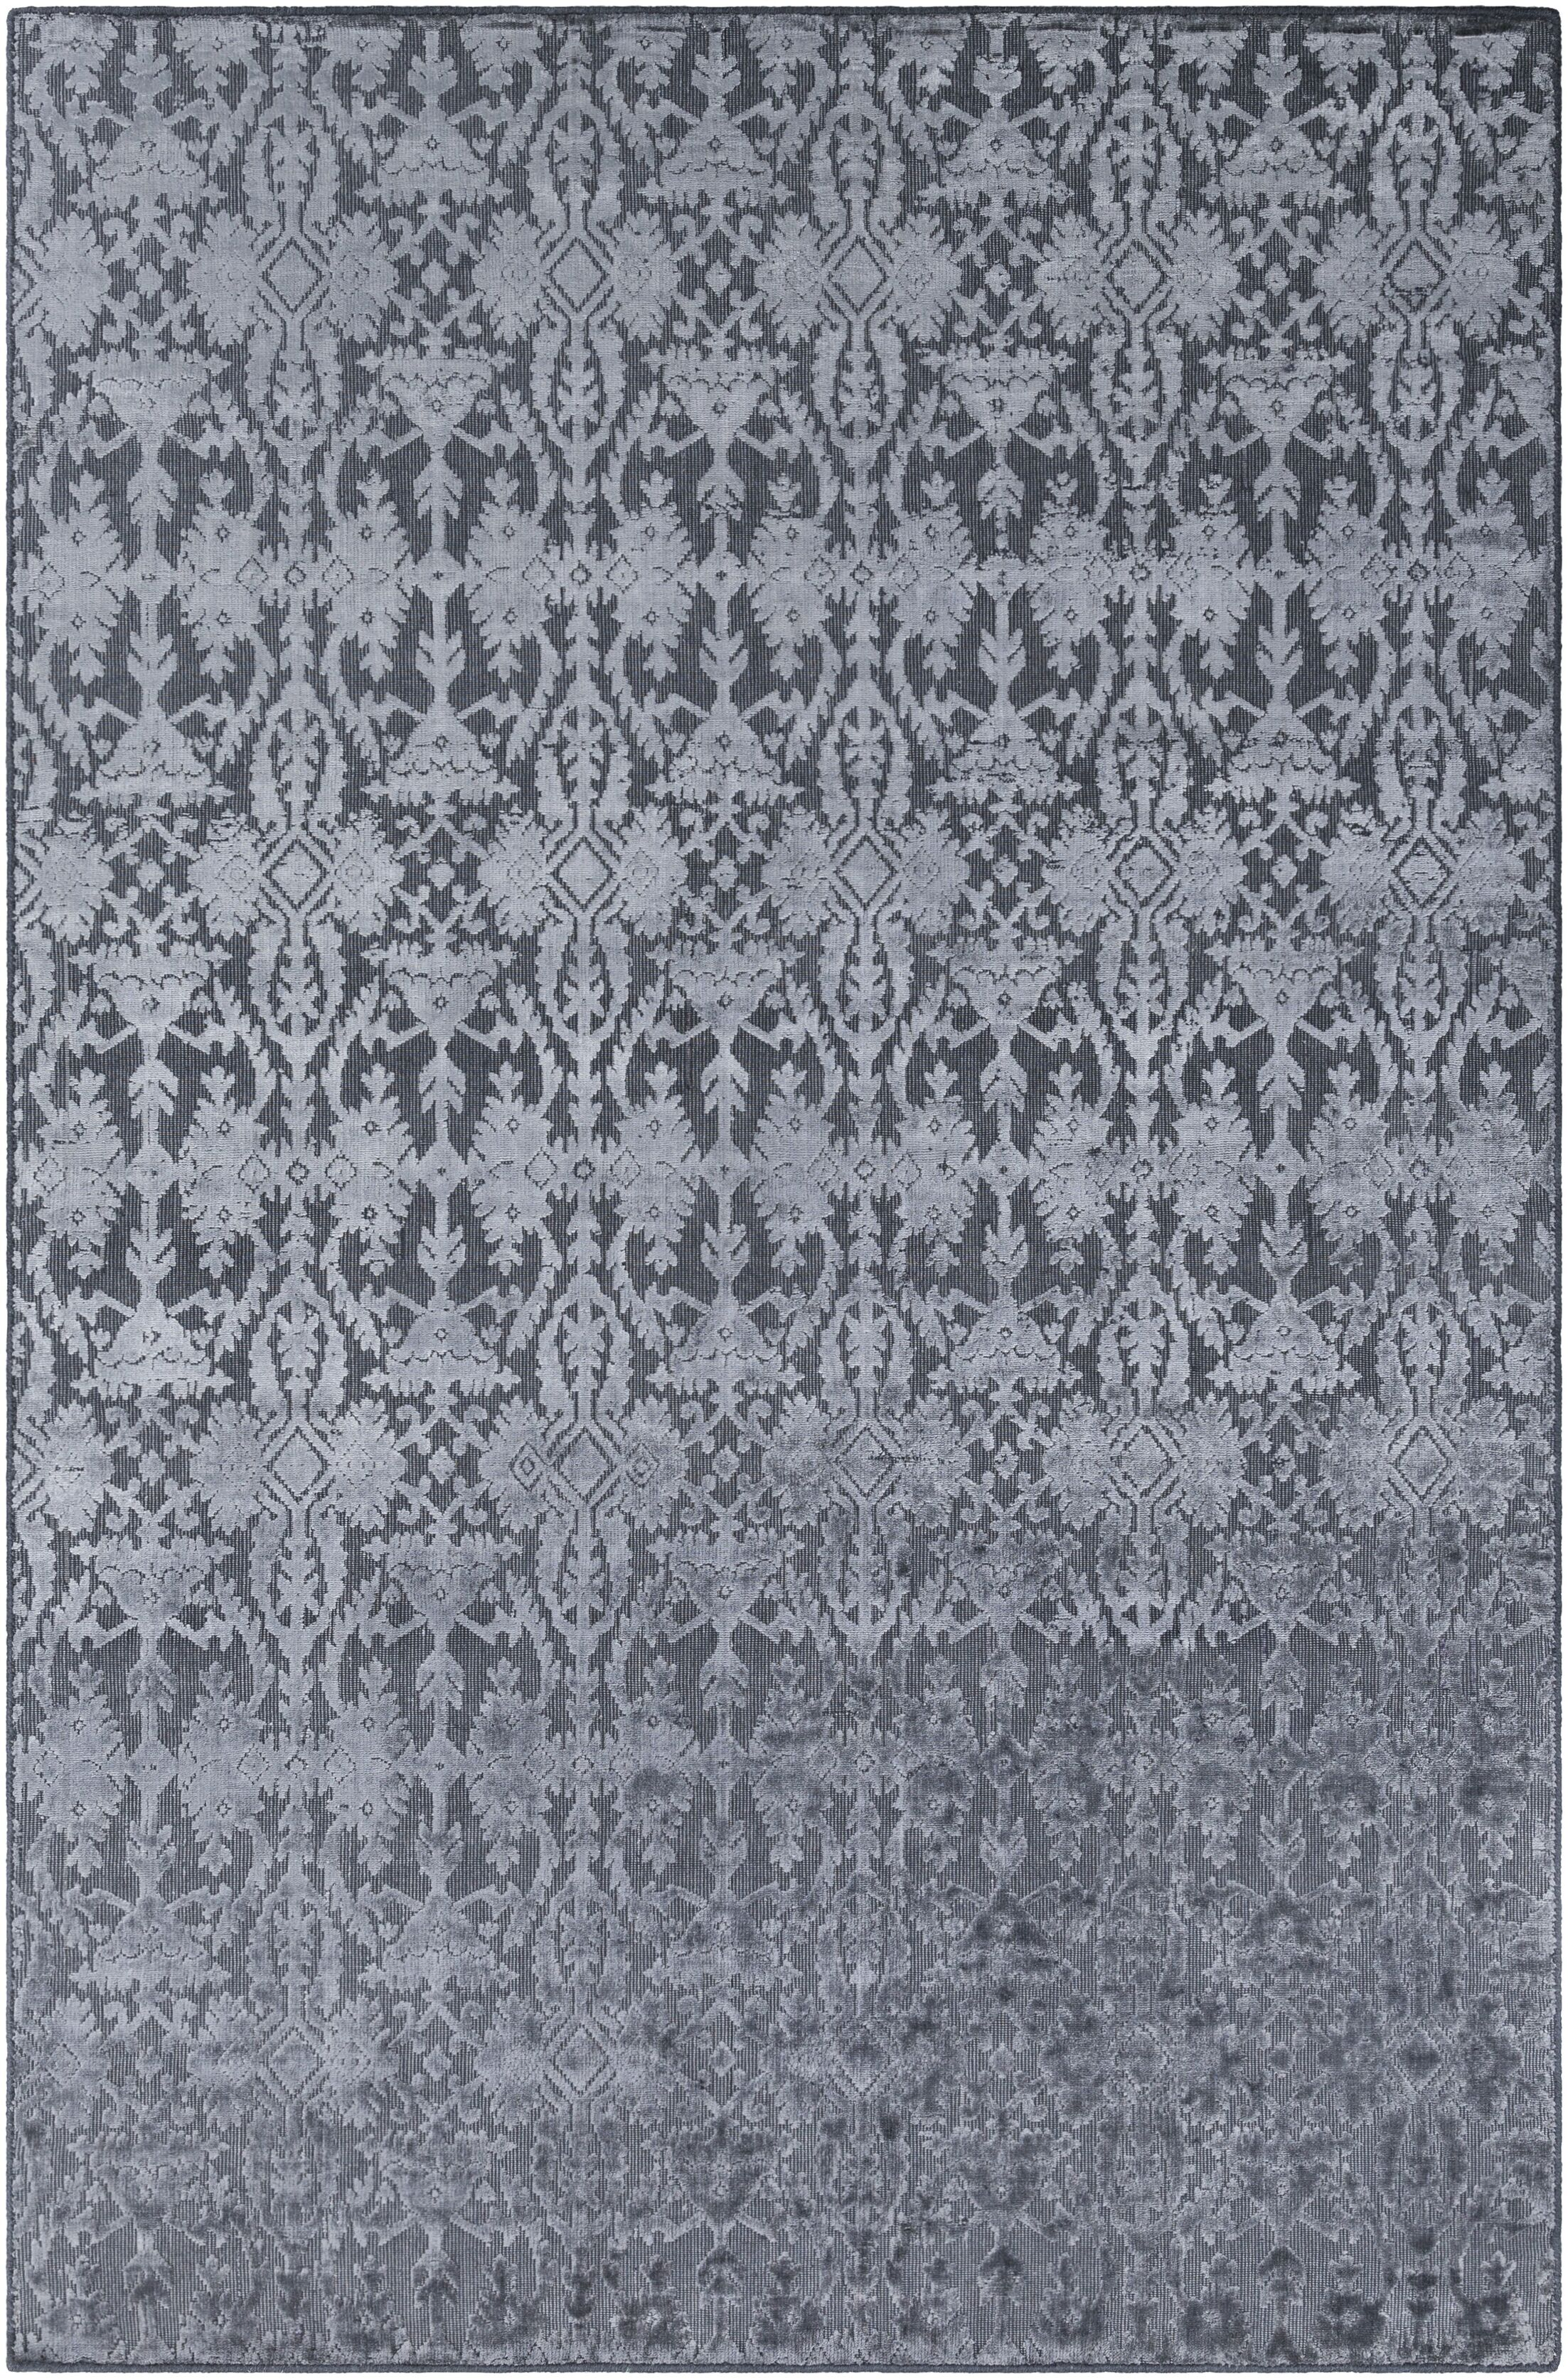 Rockland Hand-Knotted Medium Gray Area Rug Rug Size: Rectangle 2' x 3'